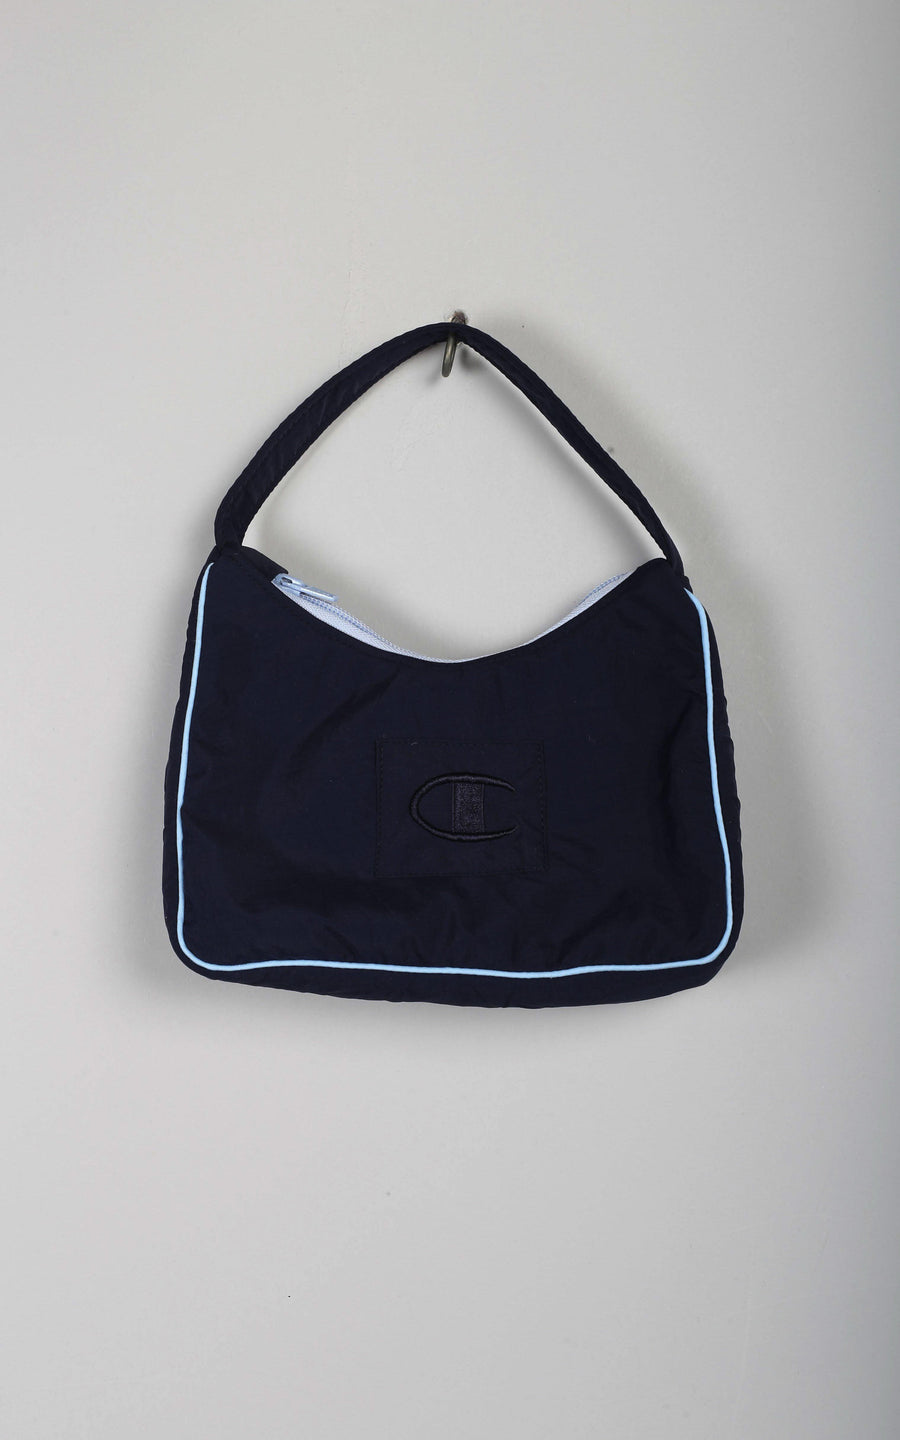 Vintage Rework Champion Handbag